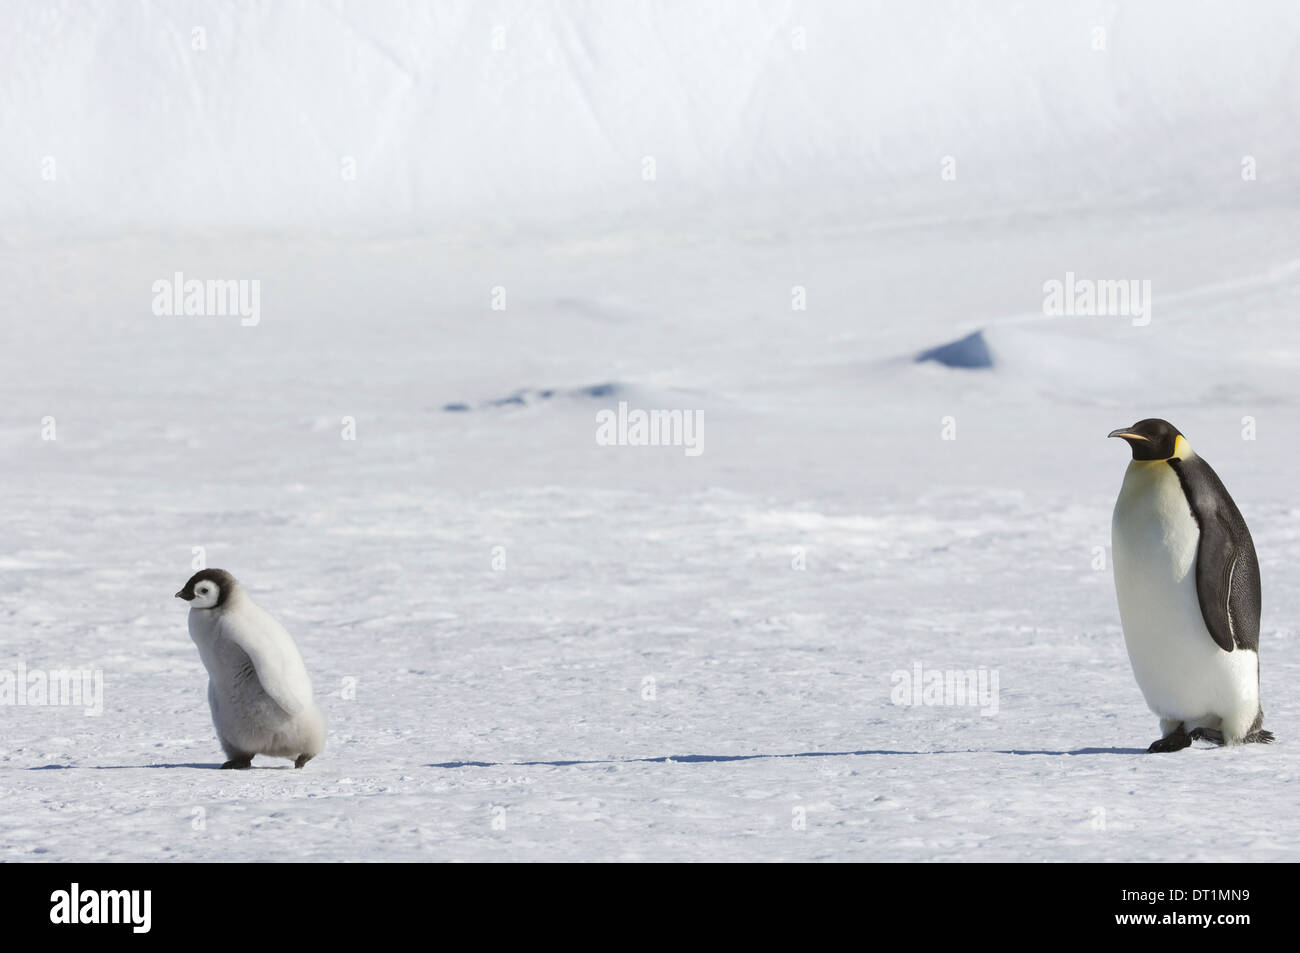 An adult Emperor penguin watching over a baby chick on the ice on Snow Hill island - Stock Image